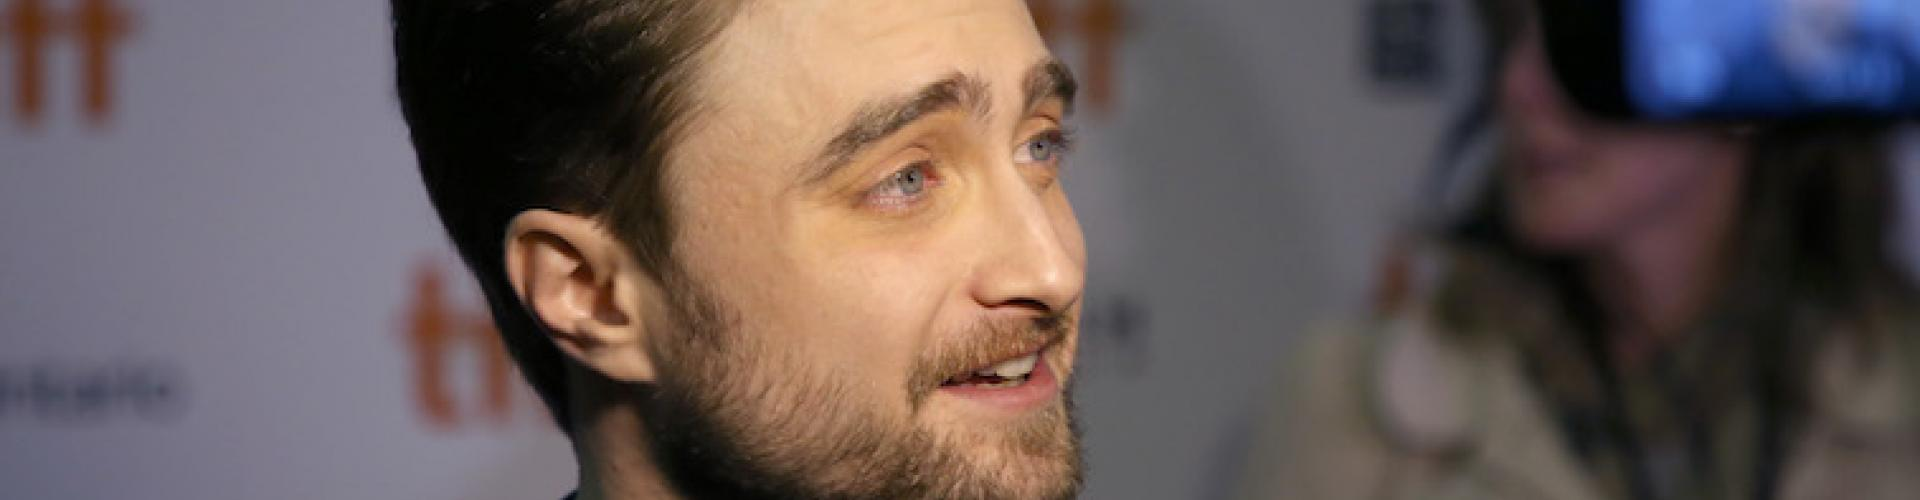 Daniel Radcliffe Doesn't Like to Watch a Specific 'Harry Potter' Movie